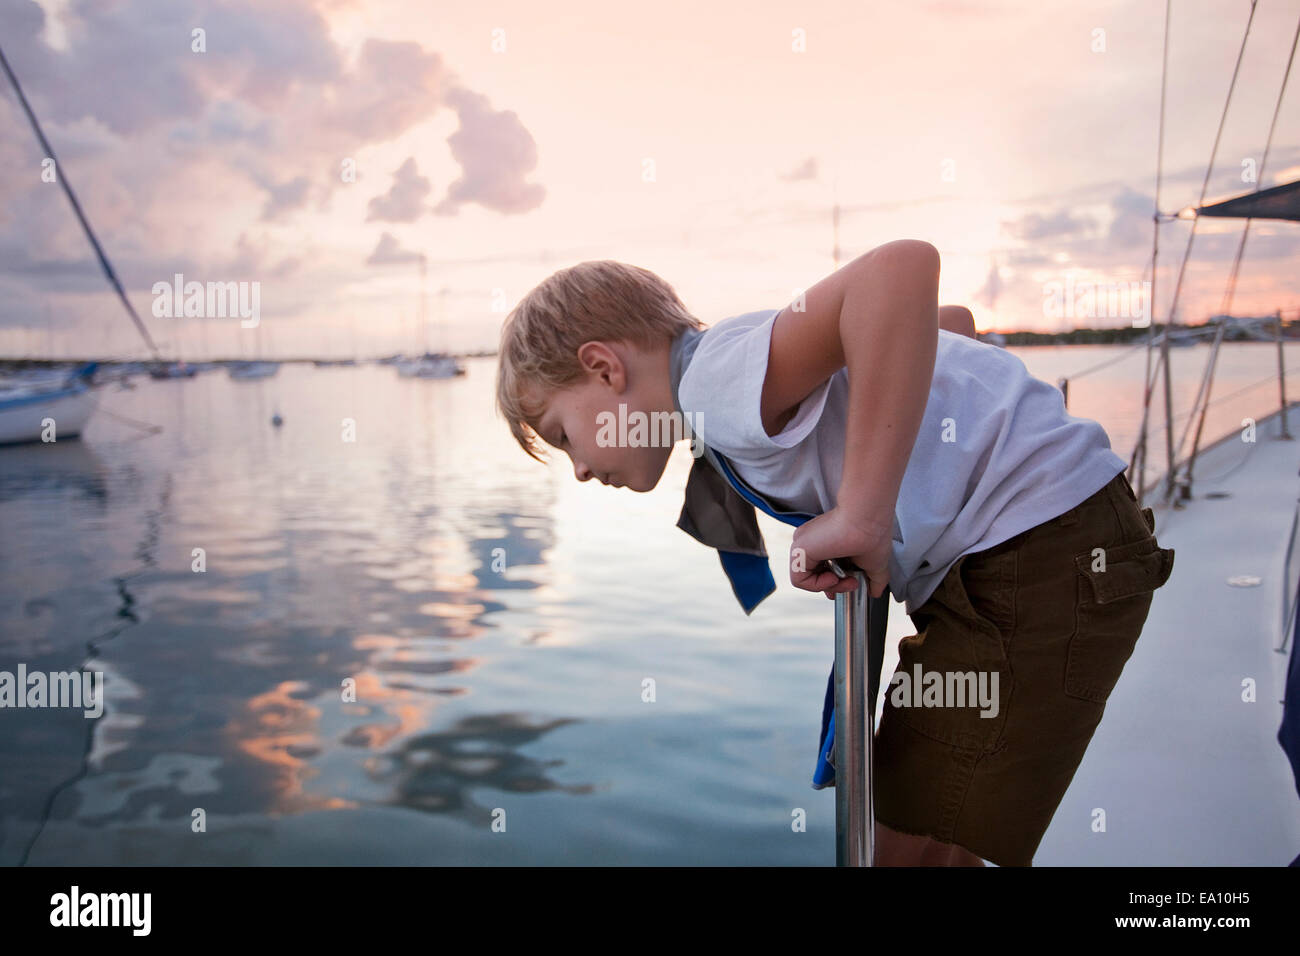 Boy on sailboat looking down to sea at sunset - Stock Image